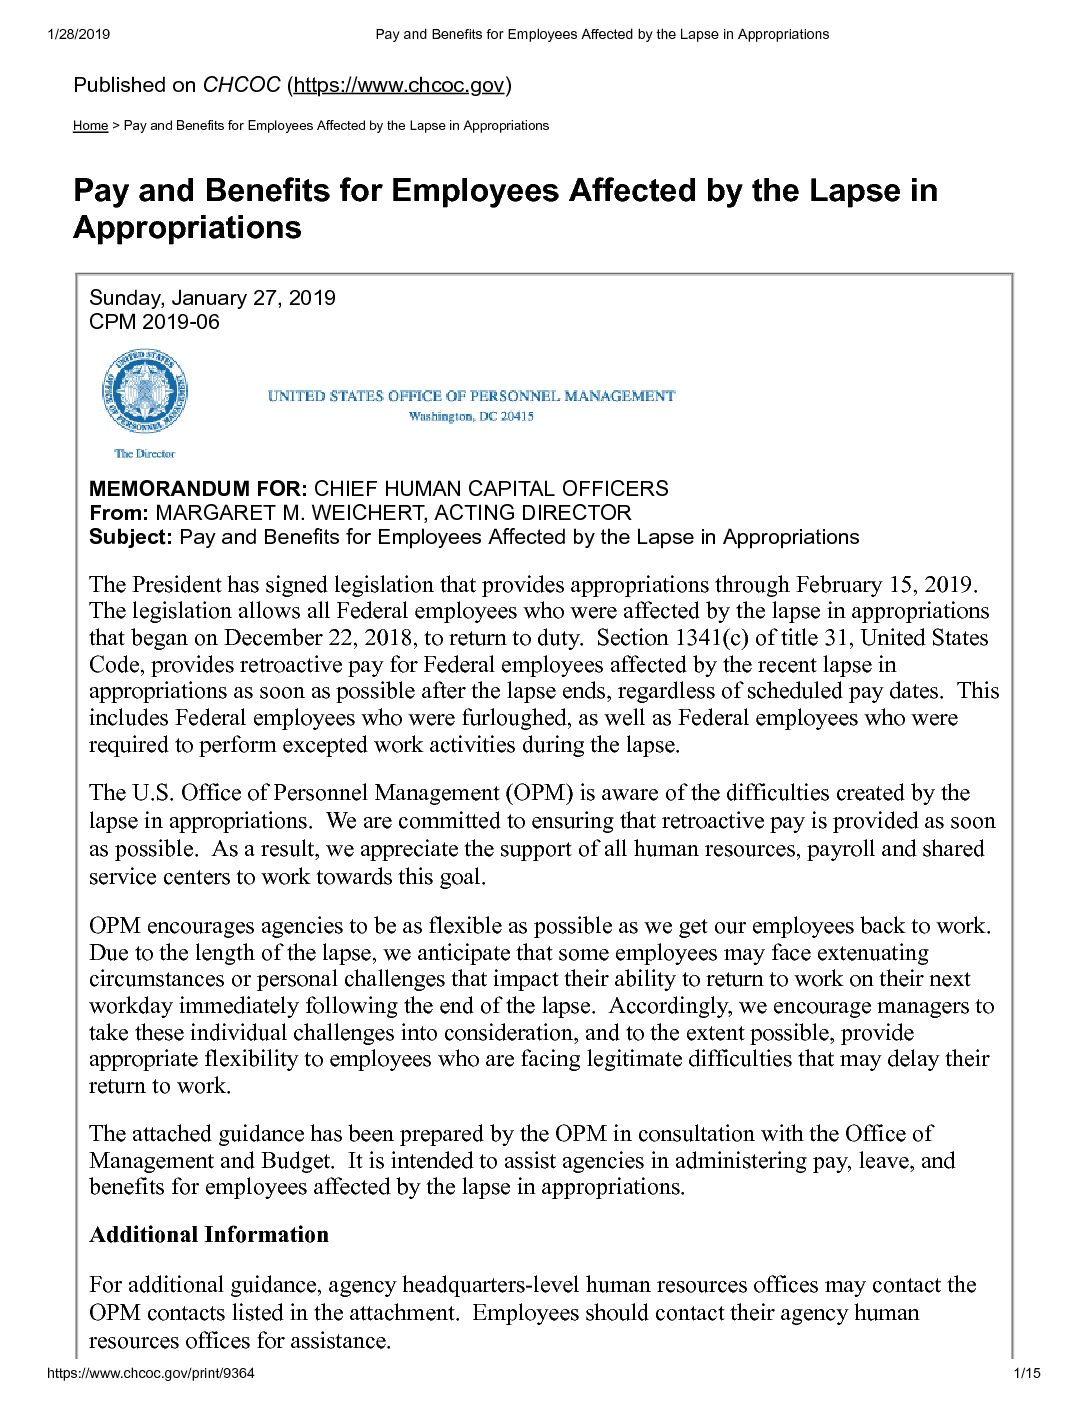 Pay and Benefits for Employees Affected by the Lapse in Appropriations